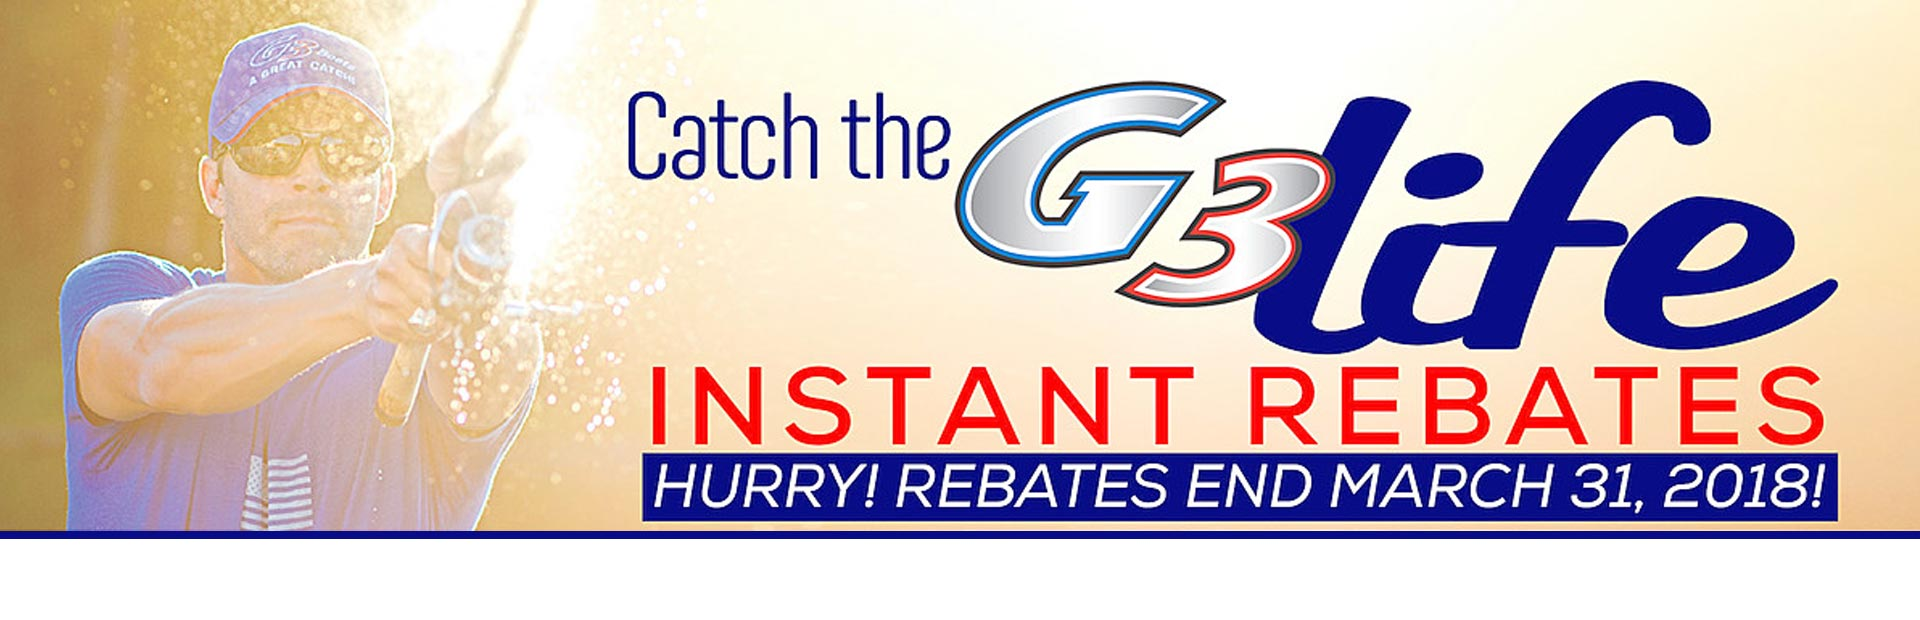 G3: Catch the G3 Life Instant Rebates